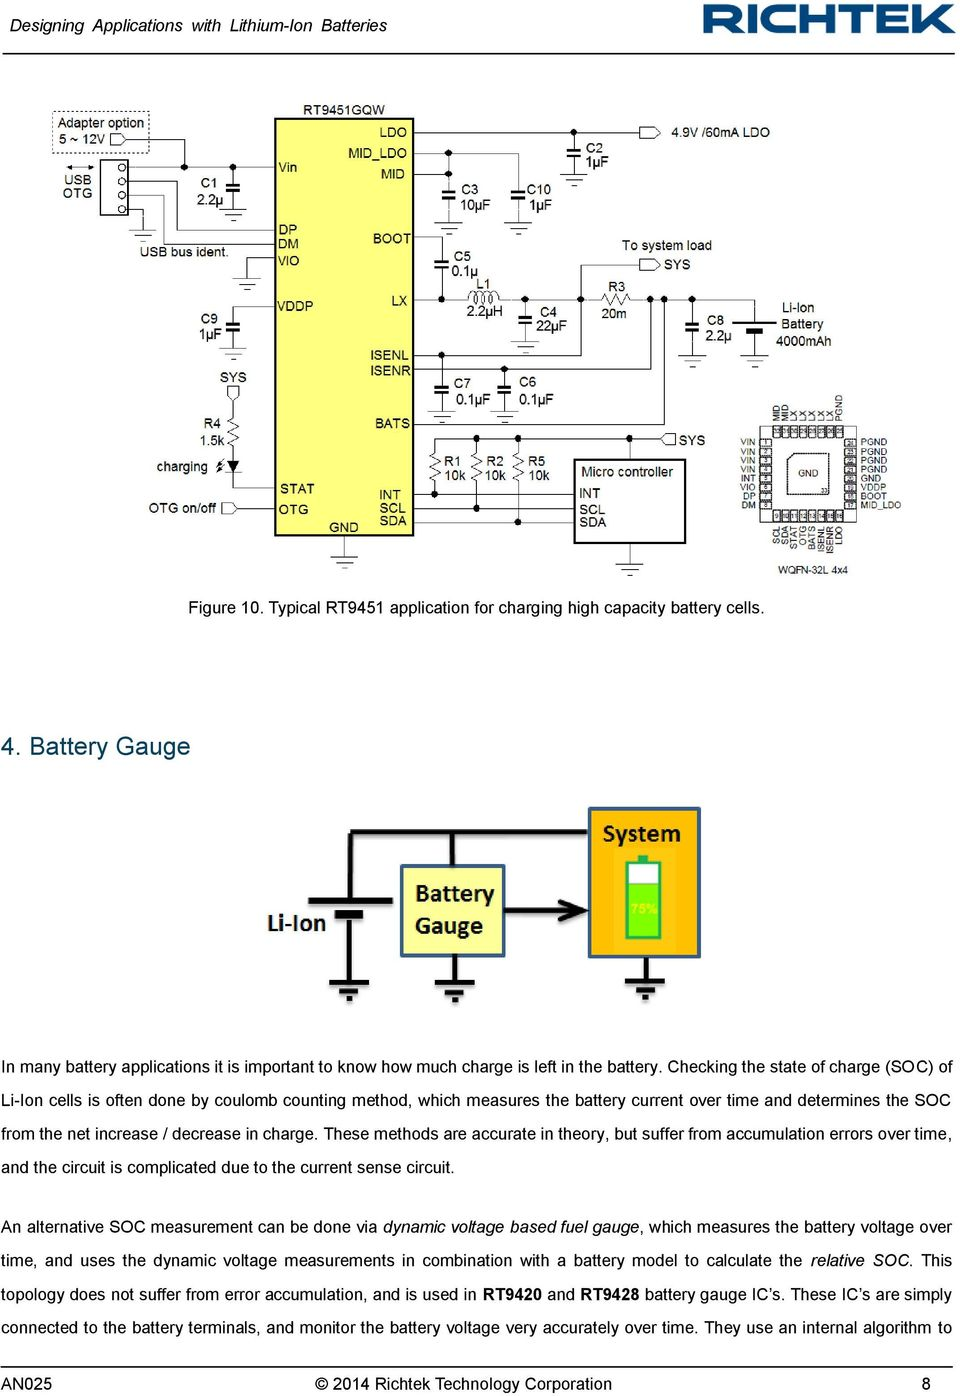 Designing Applications With Lithium Ion Batteries Pdf Circuits For The Battery Charger Of Fig 1 Alkaline Charge These Methods Are Accurate In Theory But Suffer From Accumulation Errors Over Time